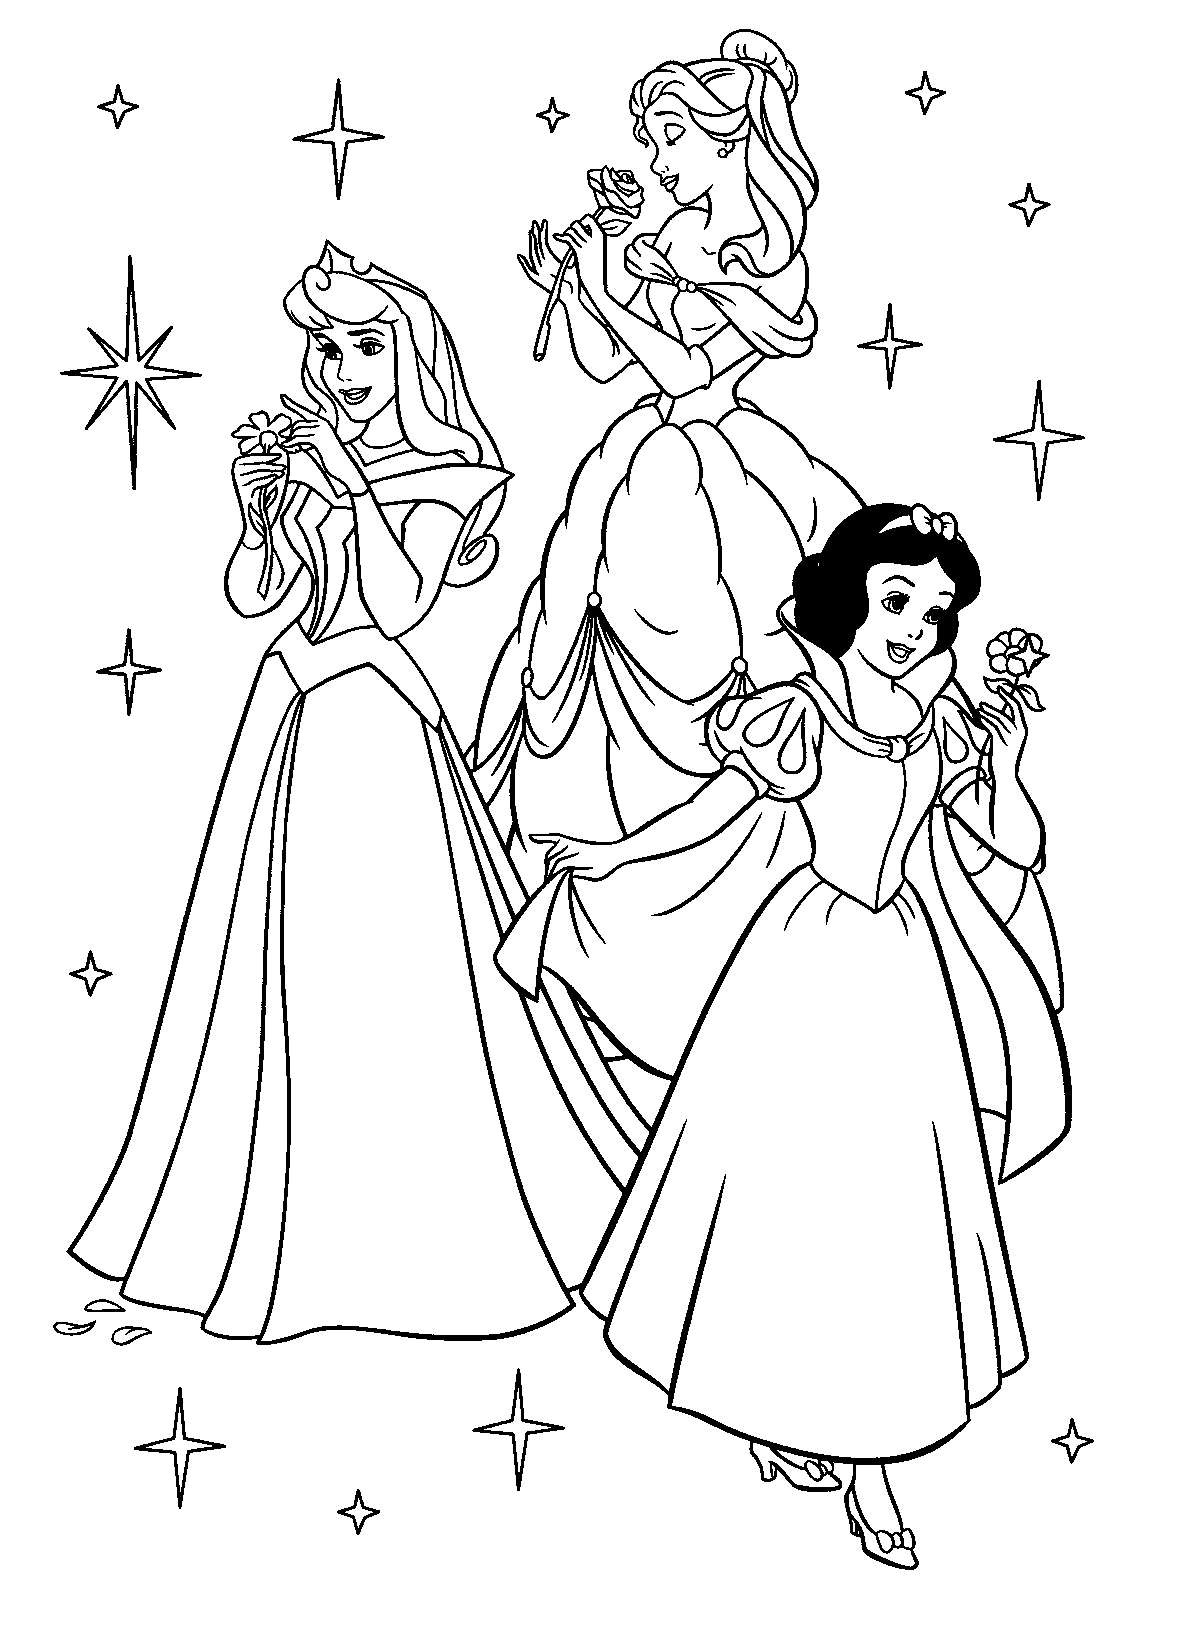 Free Printable Disney Princess Coloring Pages For Kids Free Printable Disney Princess Coloring Pages